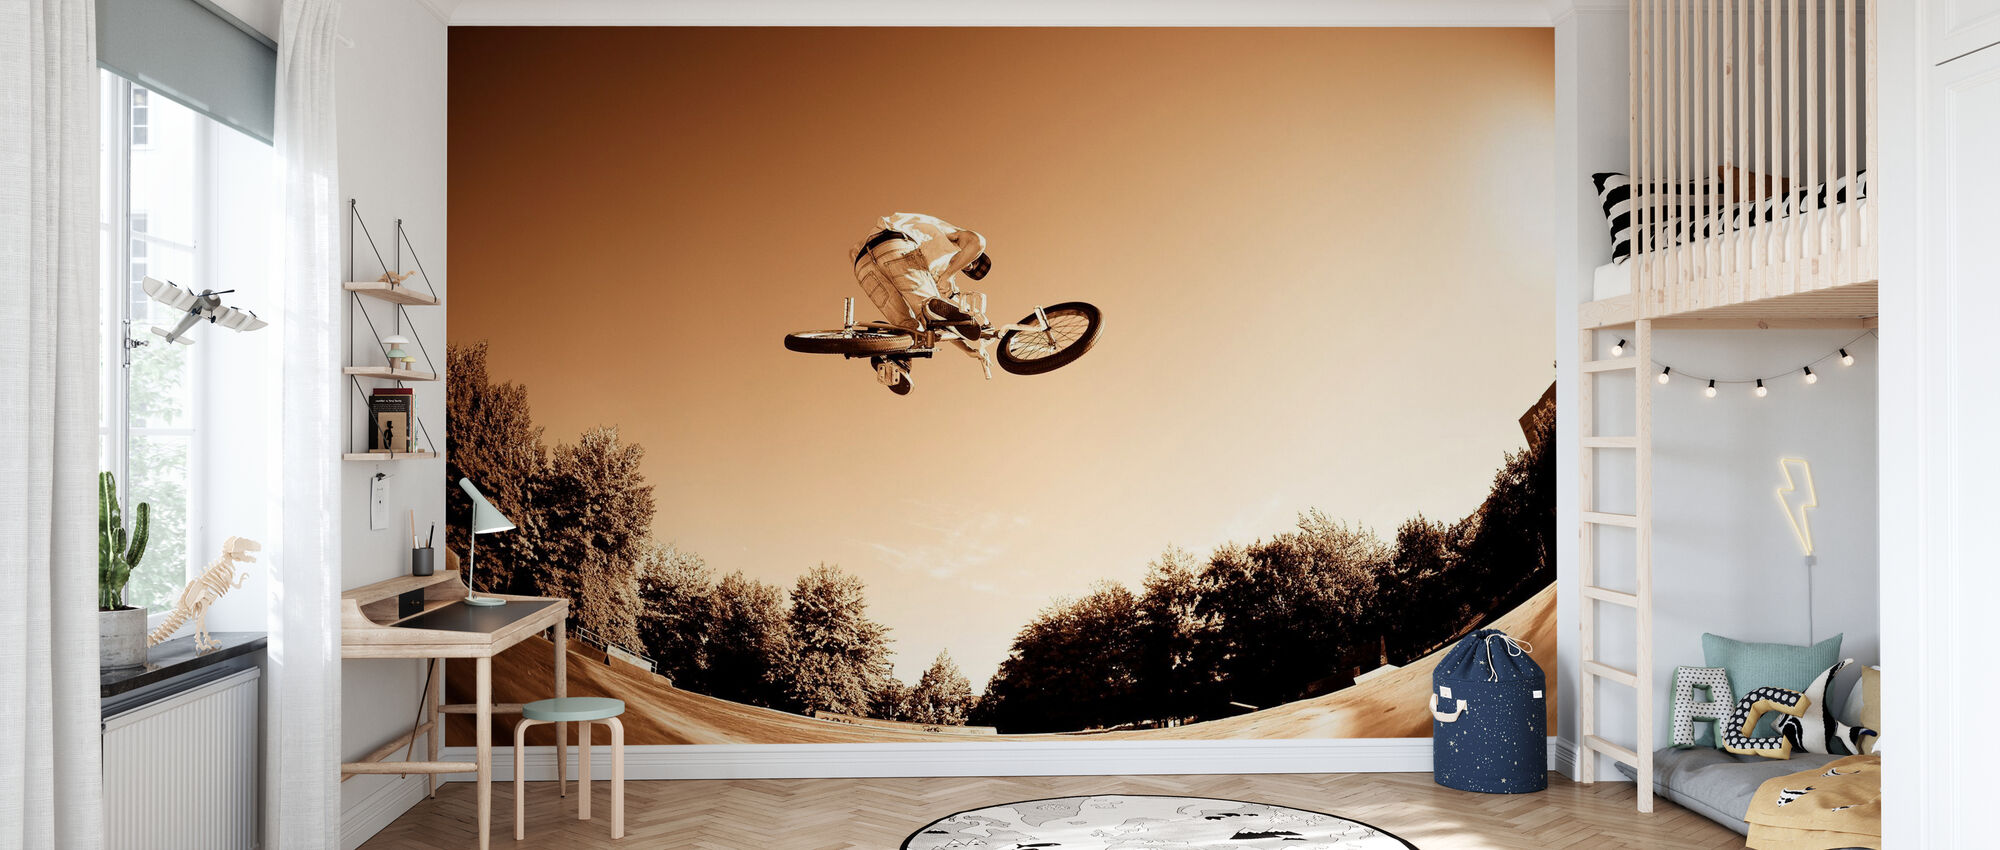 Hoge BMX-sprong - Behang - Kinderkamer